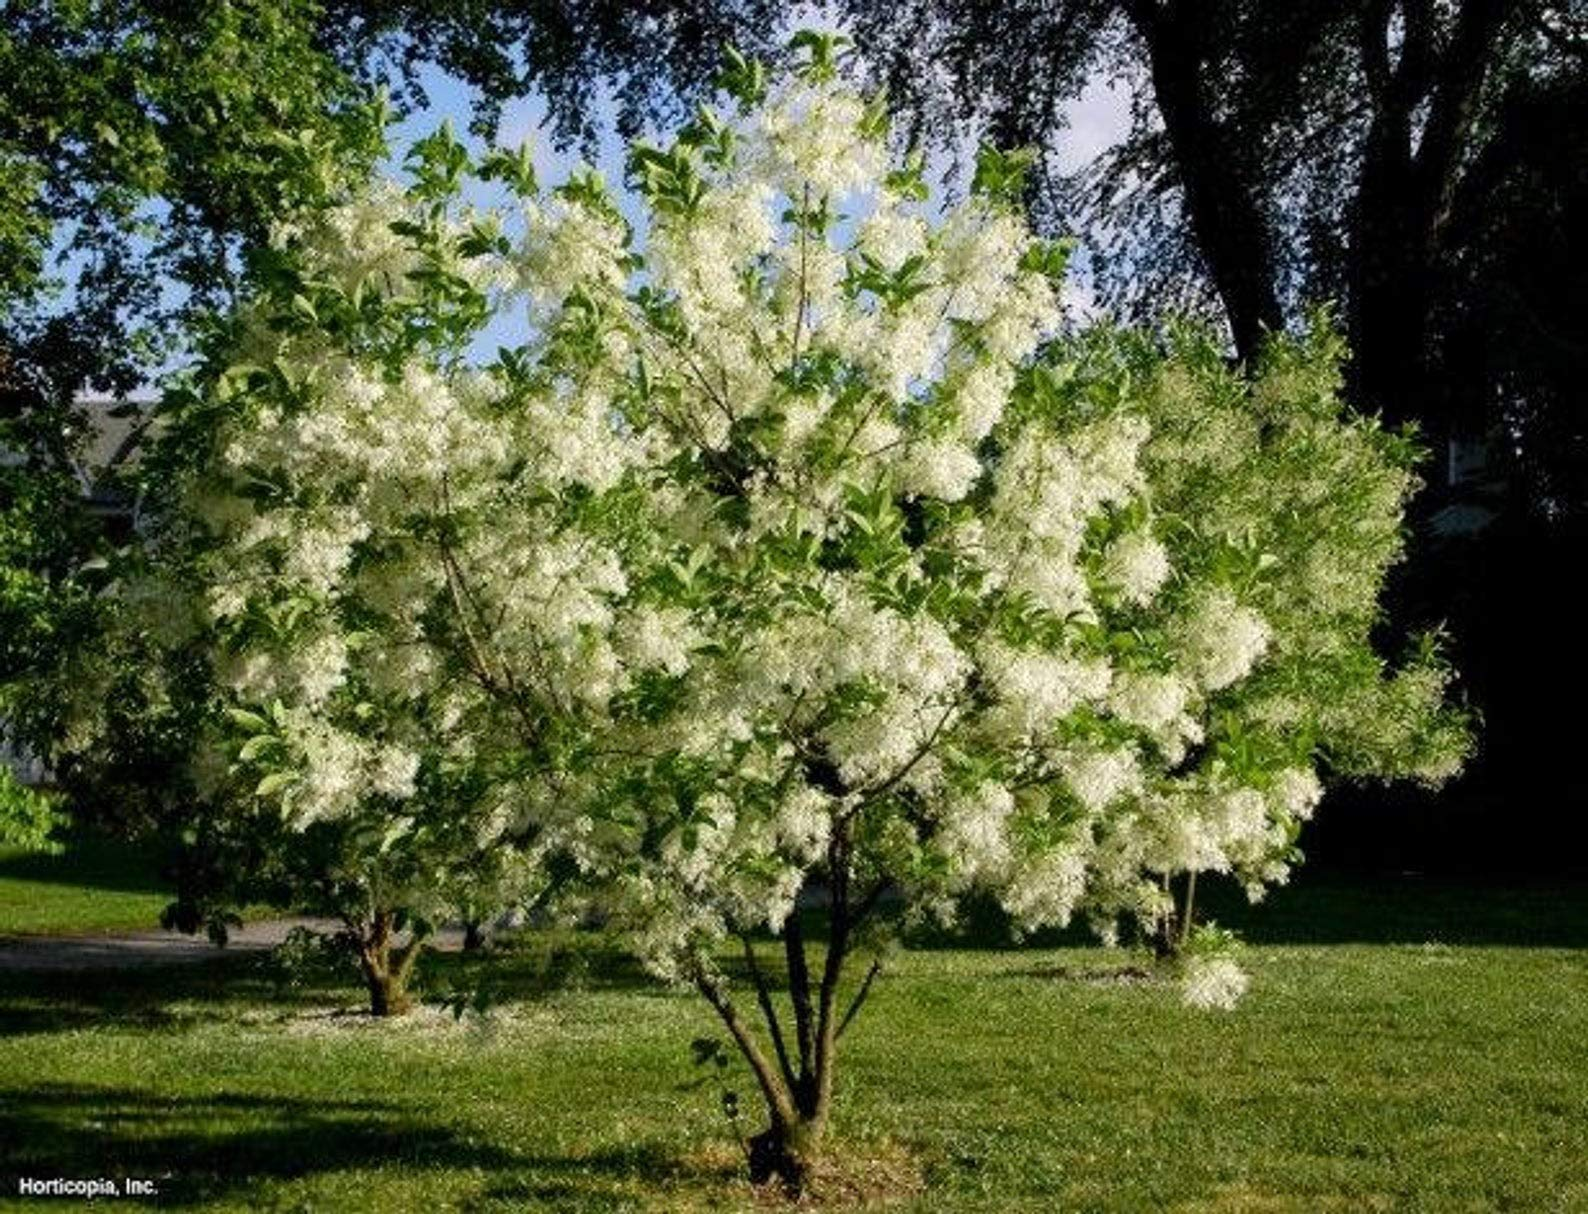 White Fringe Tree, Chionanthus virginicus, 1 Quart Potted, Landscaping, Grancy Graybeard, Deciduous, White Fringe Like Blooms, Unique